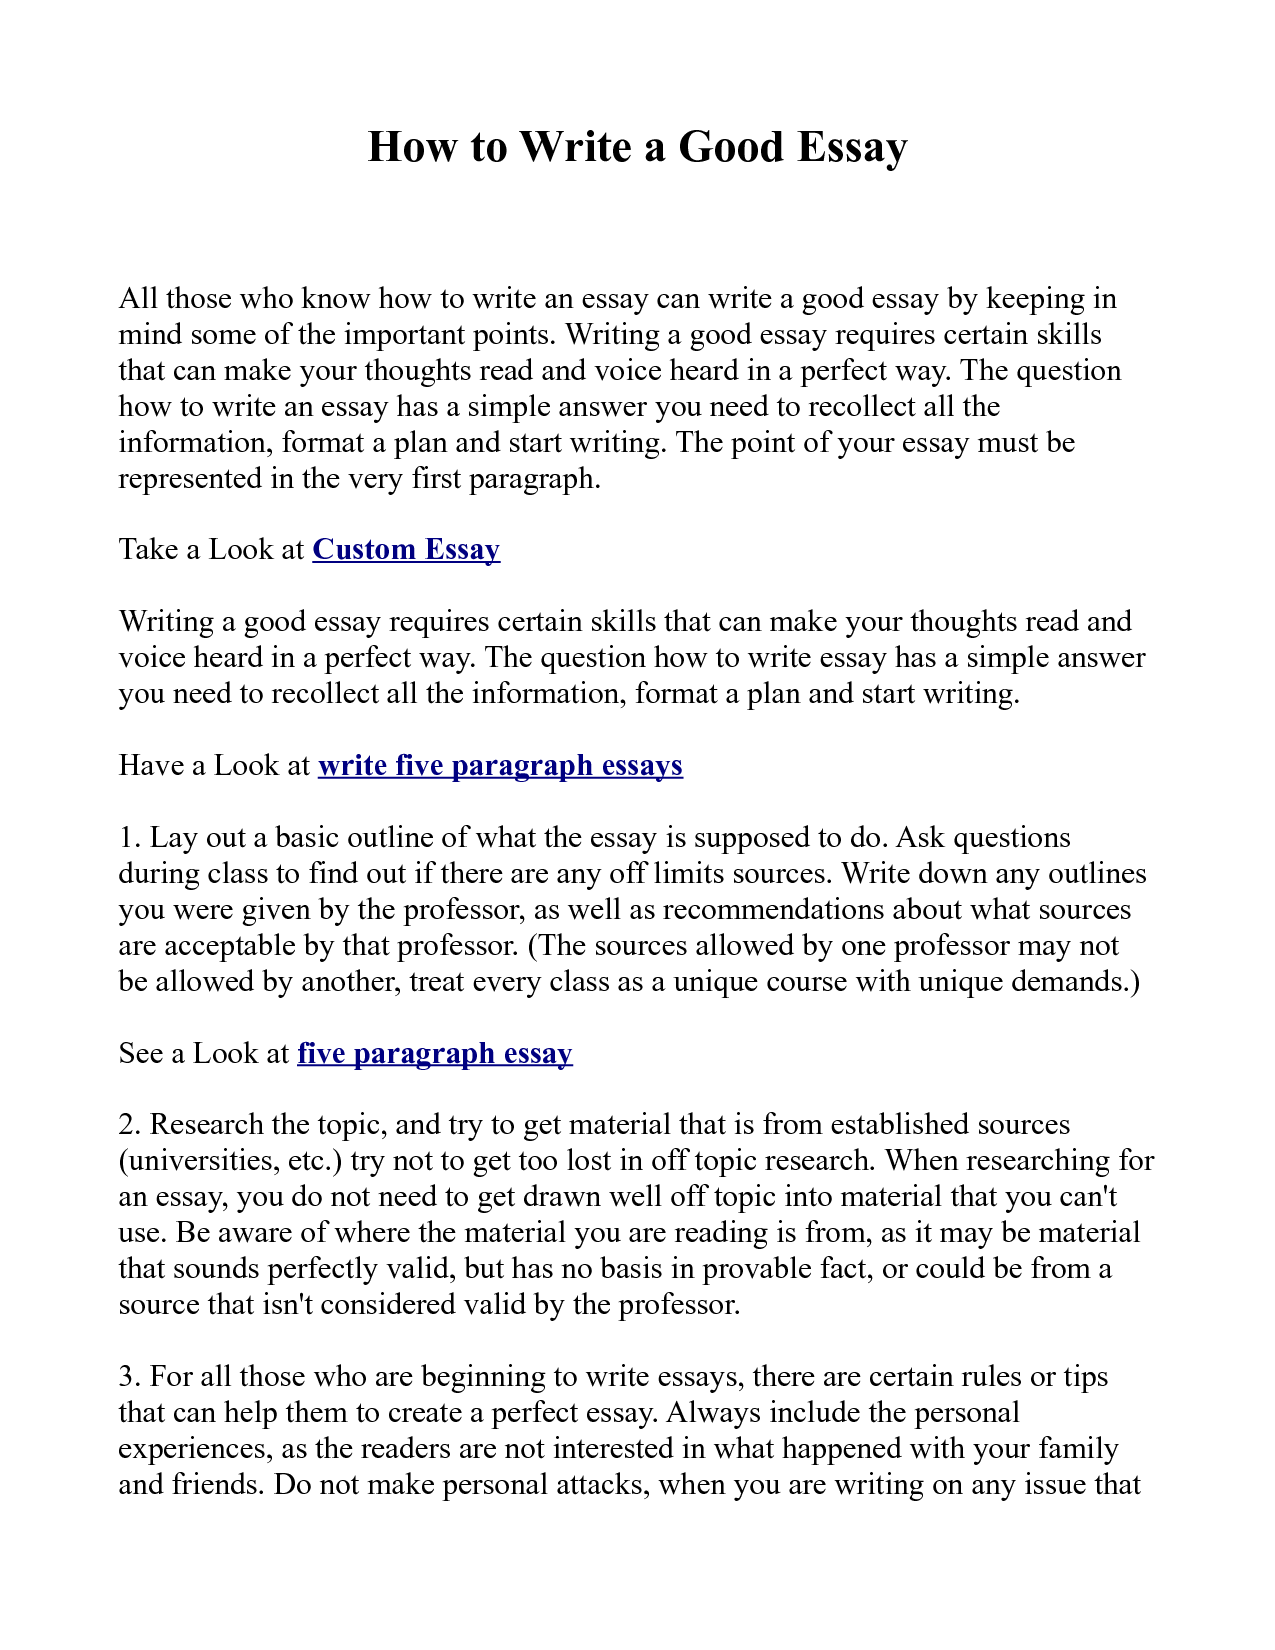 "analytical introduction paragraph essay Introductory paragraph (for an analytical essay about literature) information you need to include (you decide the best order) 1 title (underline book titles and full plays use ""quotation marks"" for shorter works, poems, chapters, acts) 2 author 3 genre, if it is not widely known or obvious (poem, novel, play, vignette, short story, etc) 4 summary of text (keep it short and focus on."